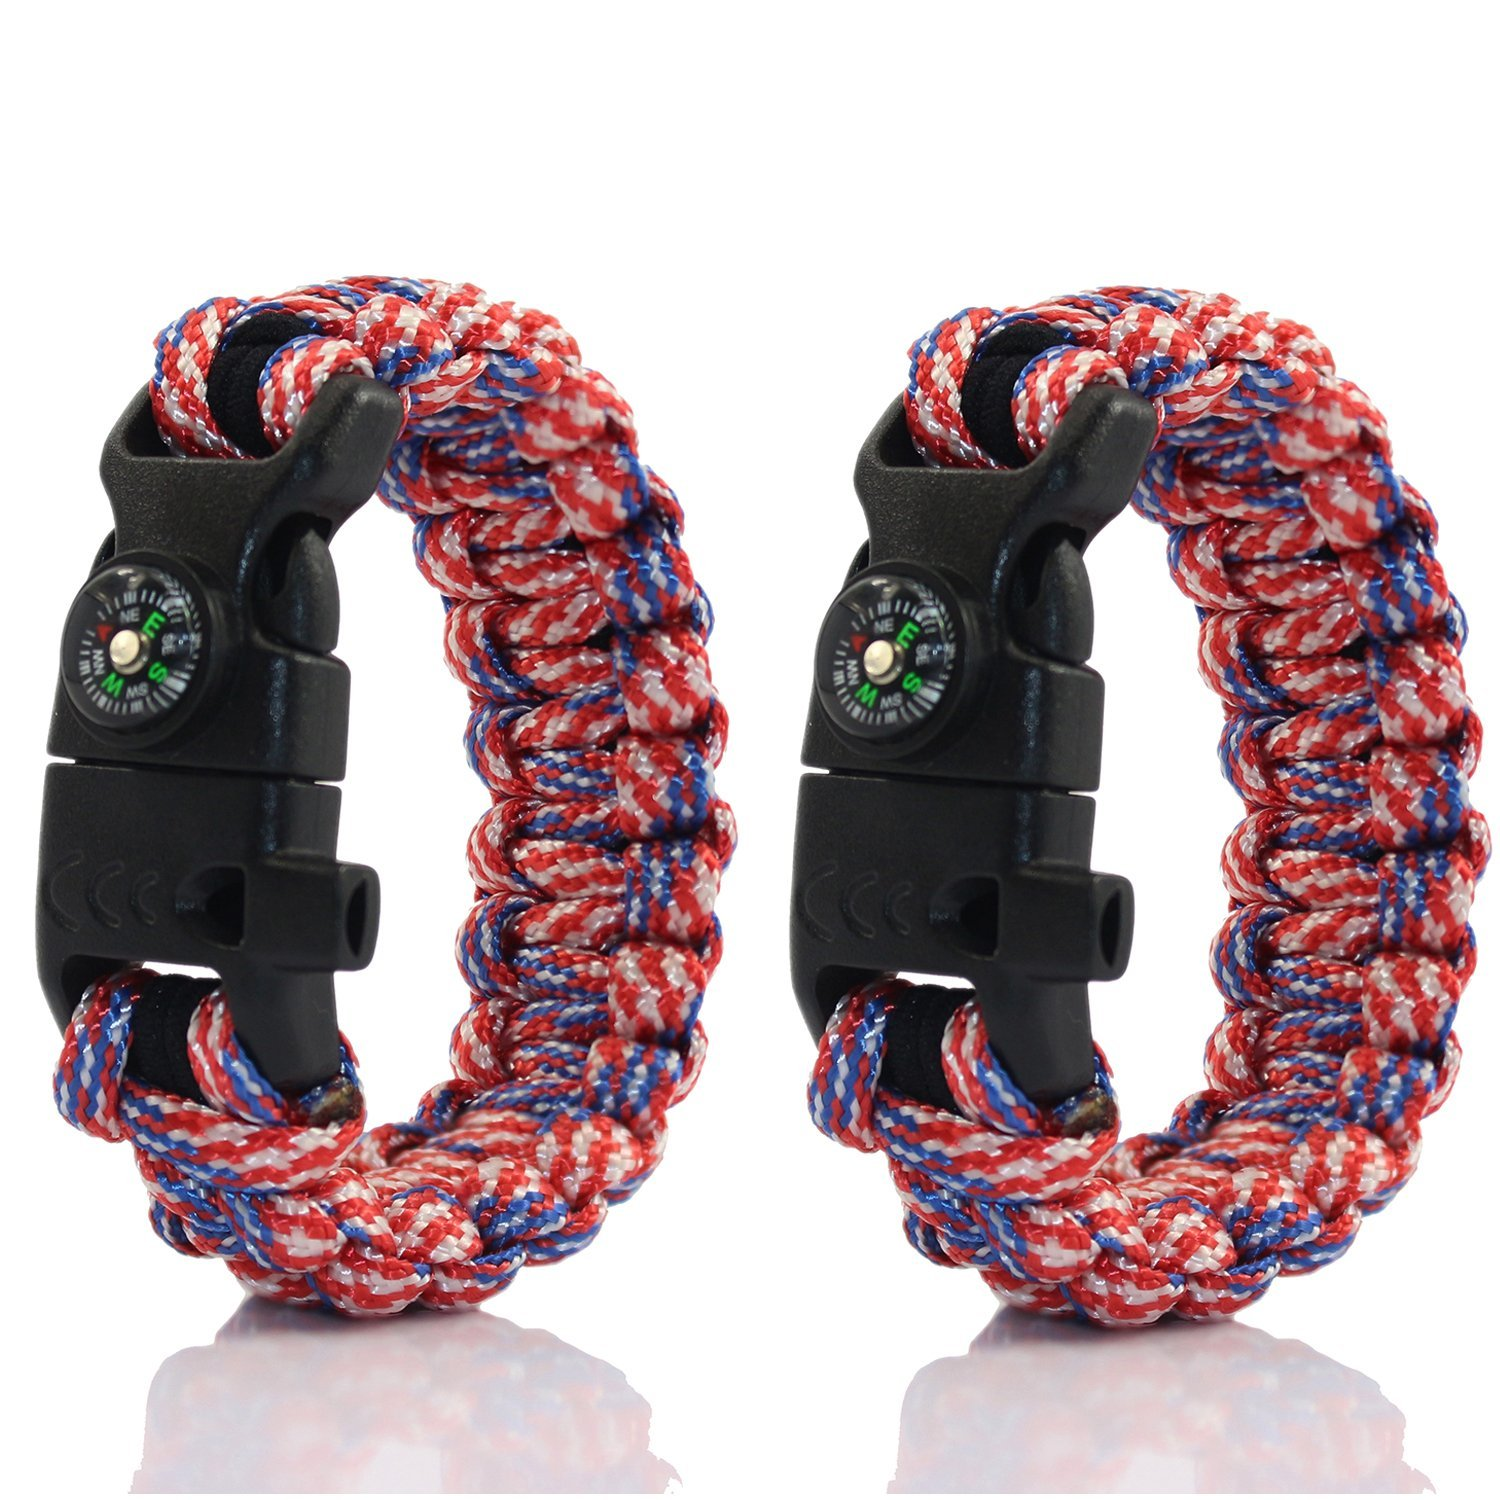 PSKOOK Paracord Survival Bracelet Elastic Shock Rope Campass Whistle Fire Starters Wildness Tactical Emergency Gear Kit(Freedom)